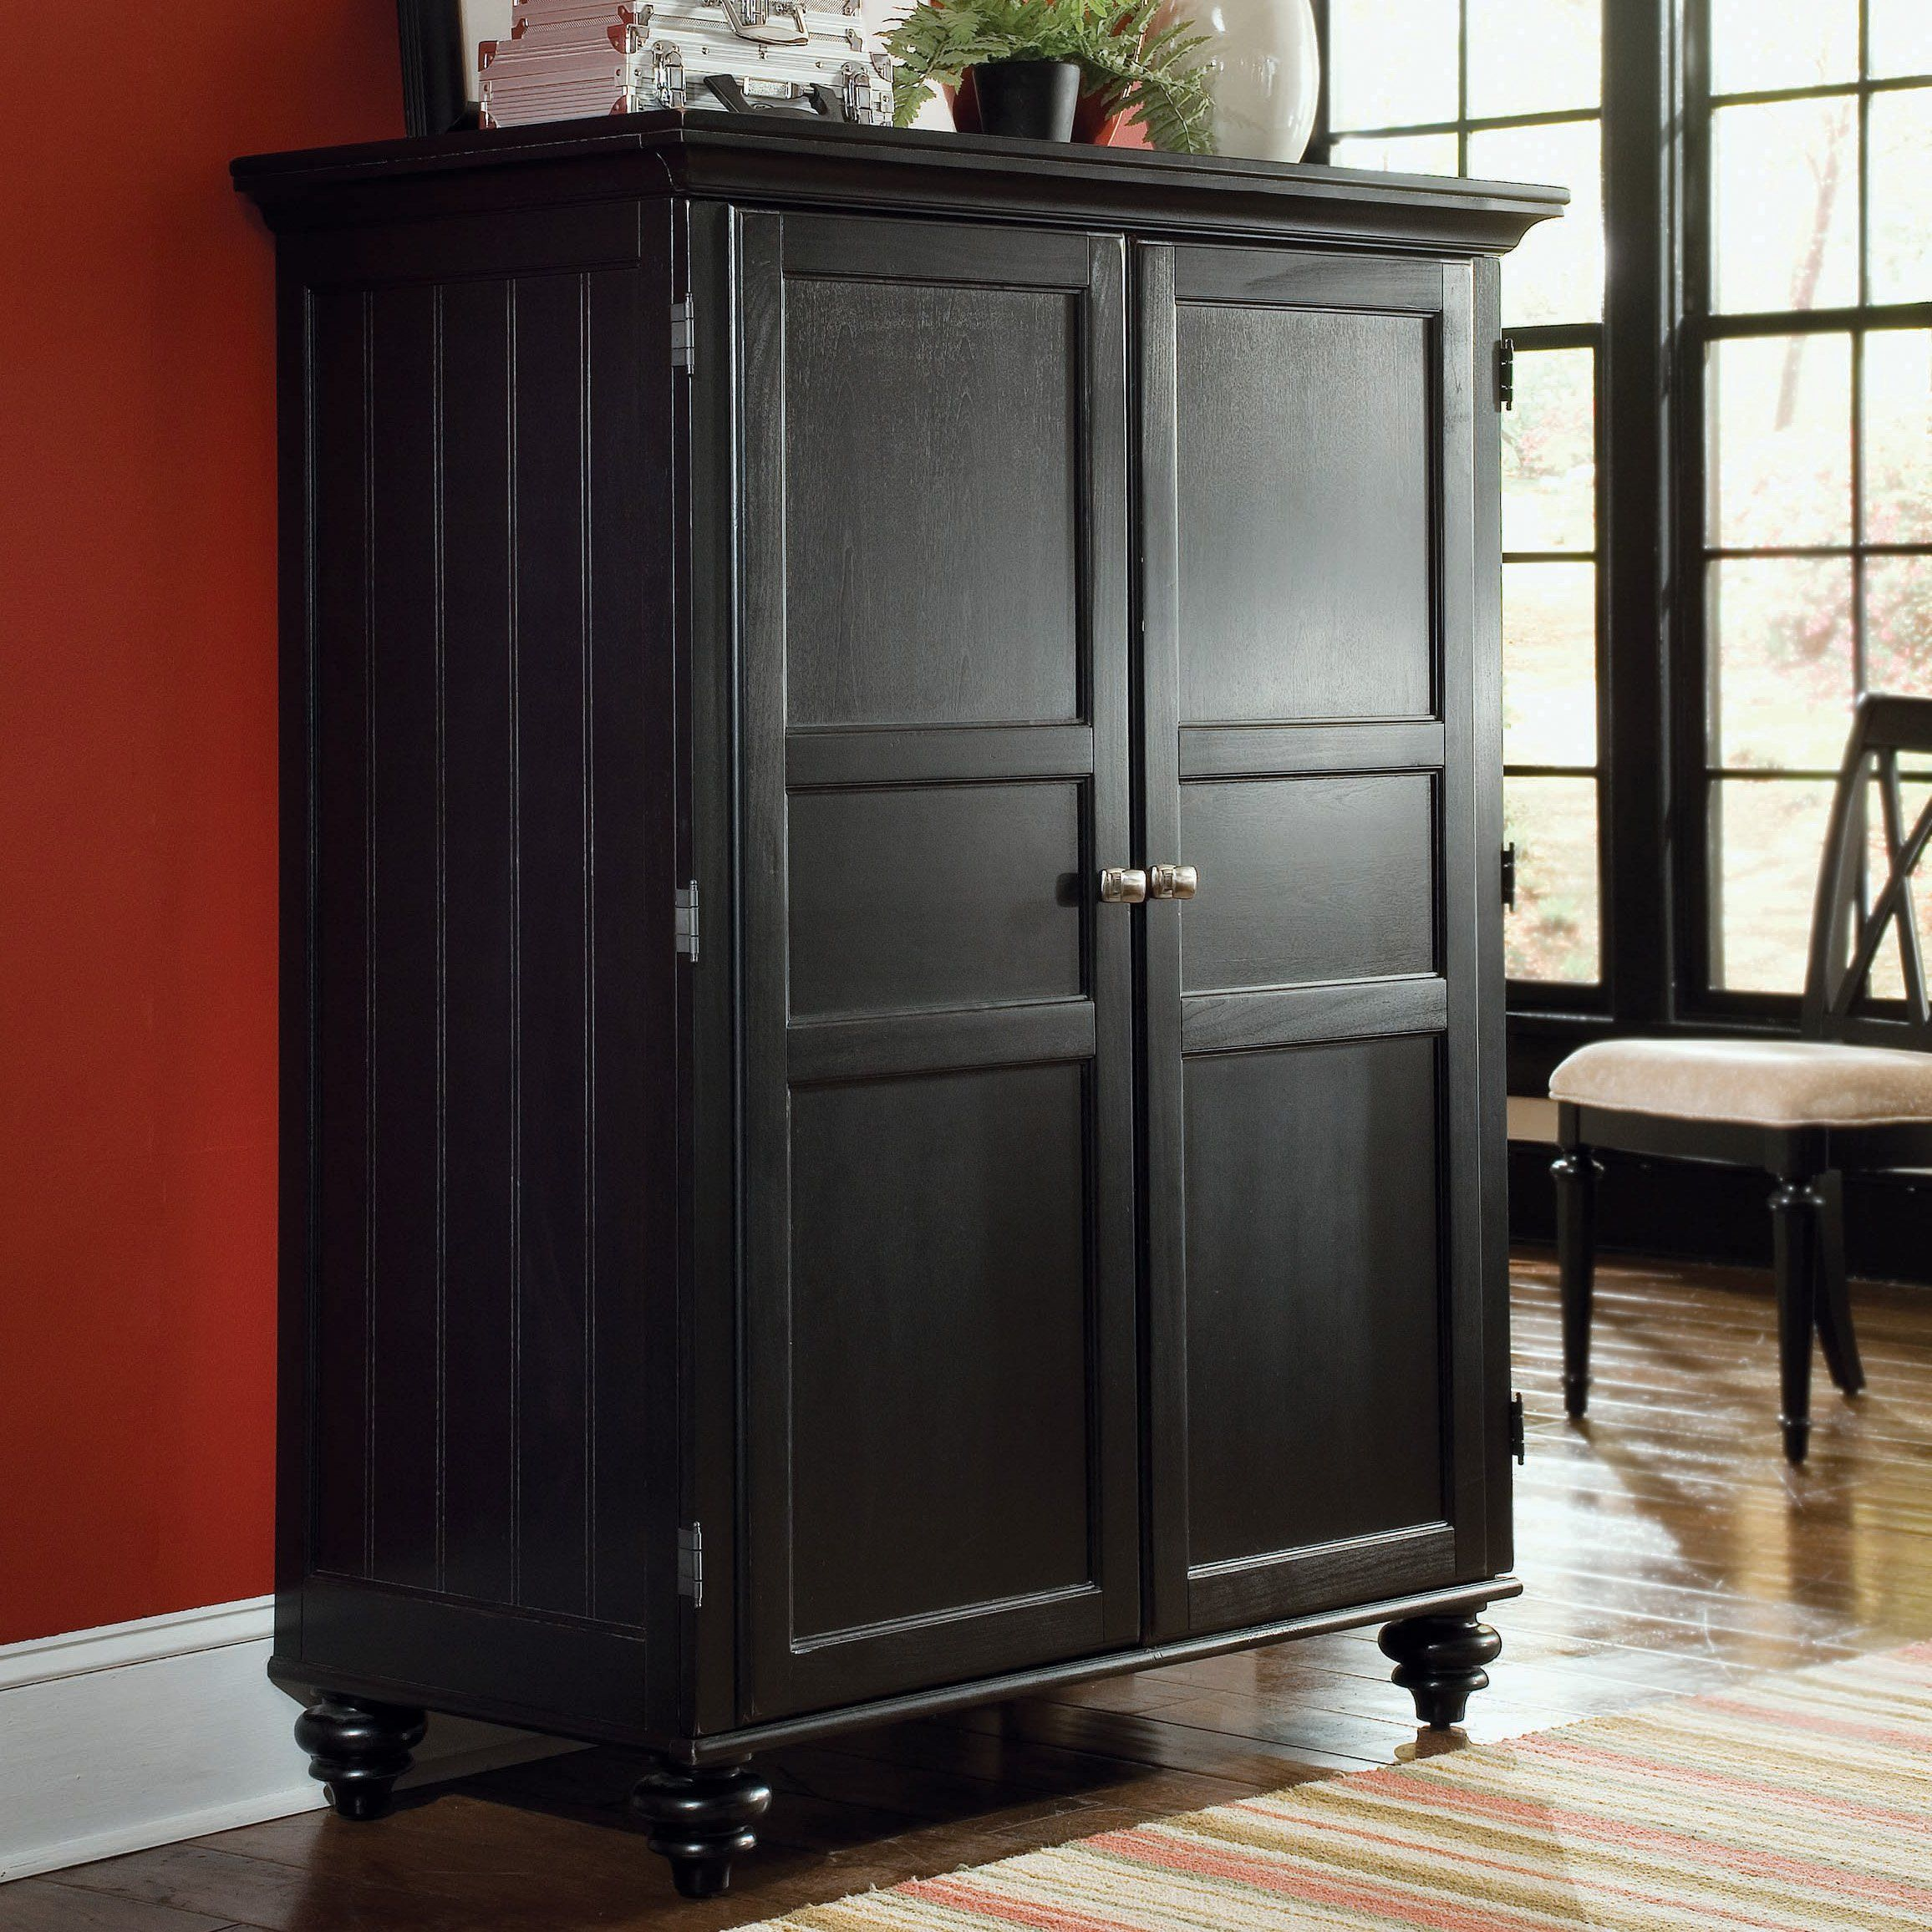 american drew camden computer armoire black storage style and the camden computer armoire black offers you all that and more